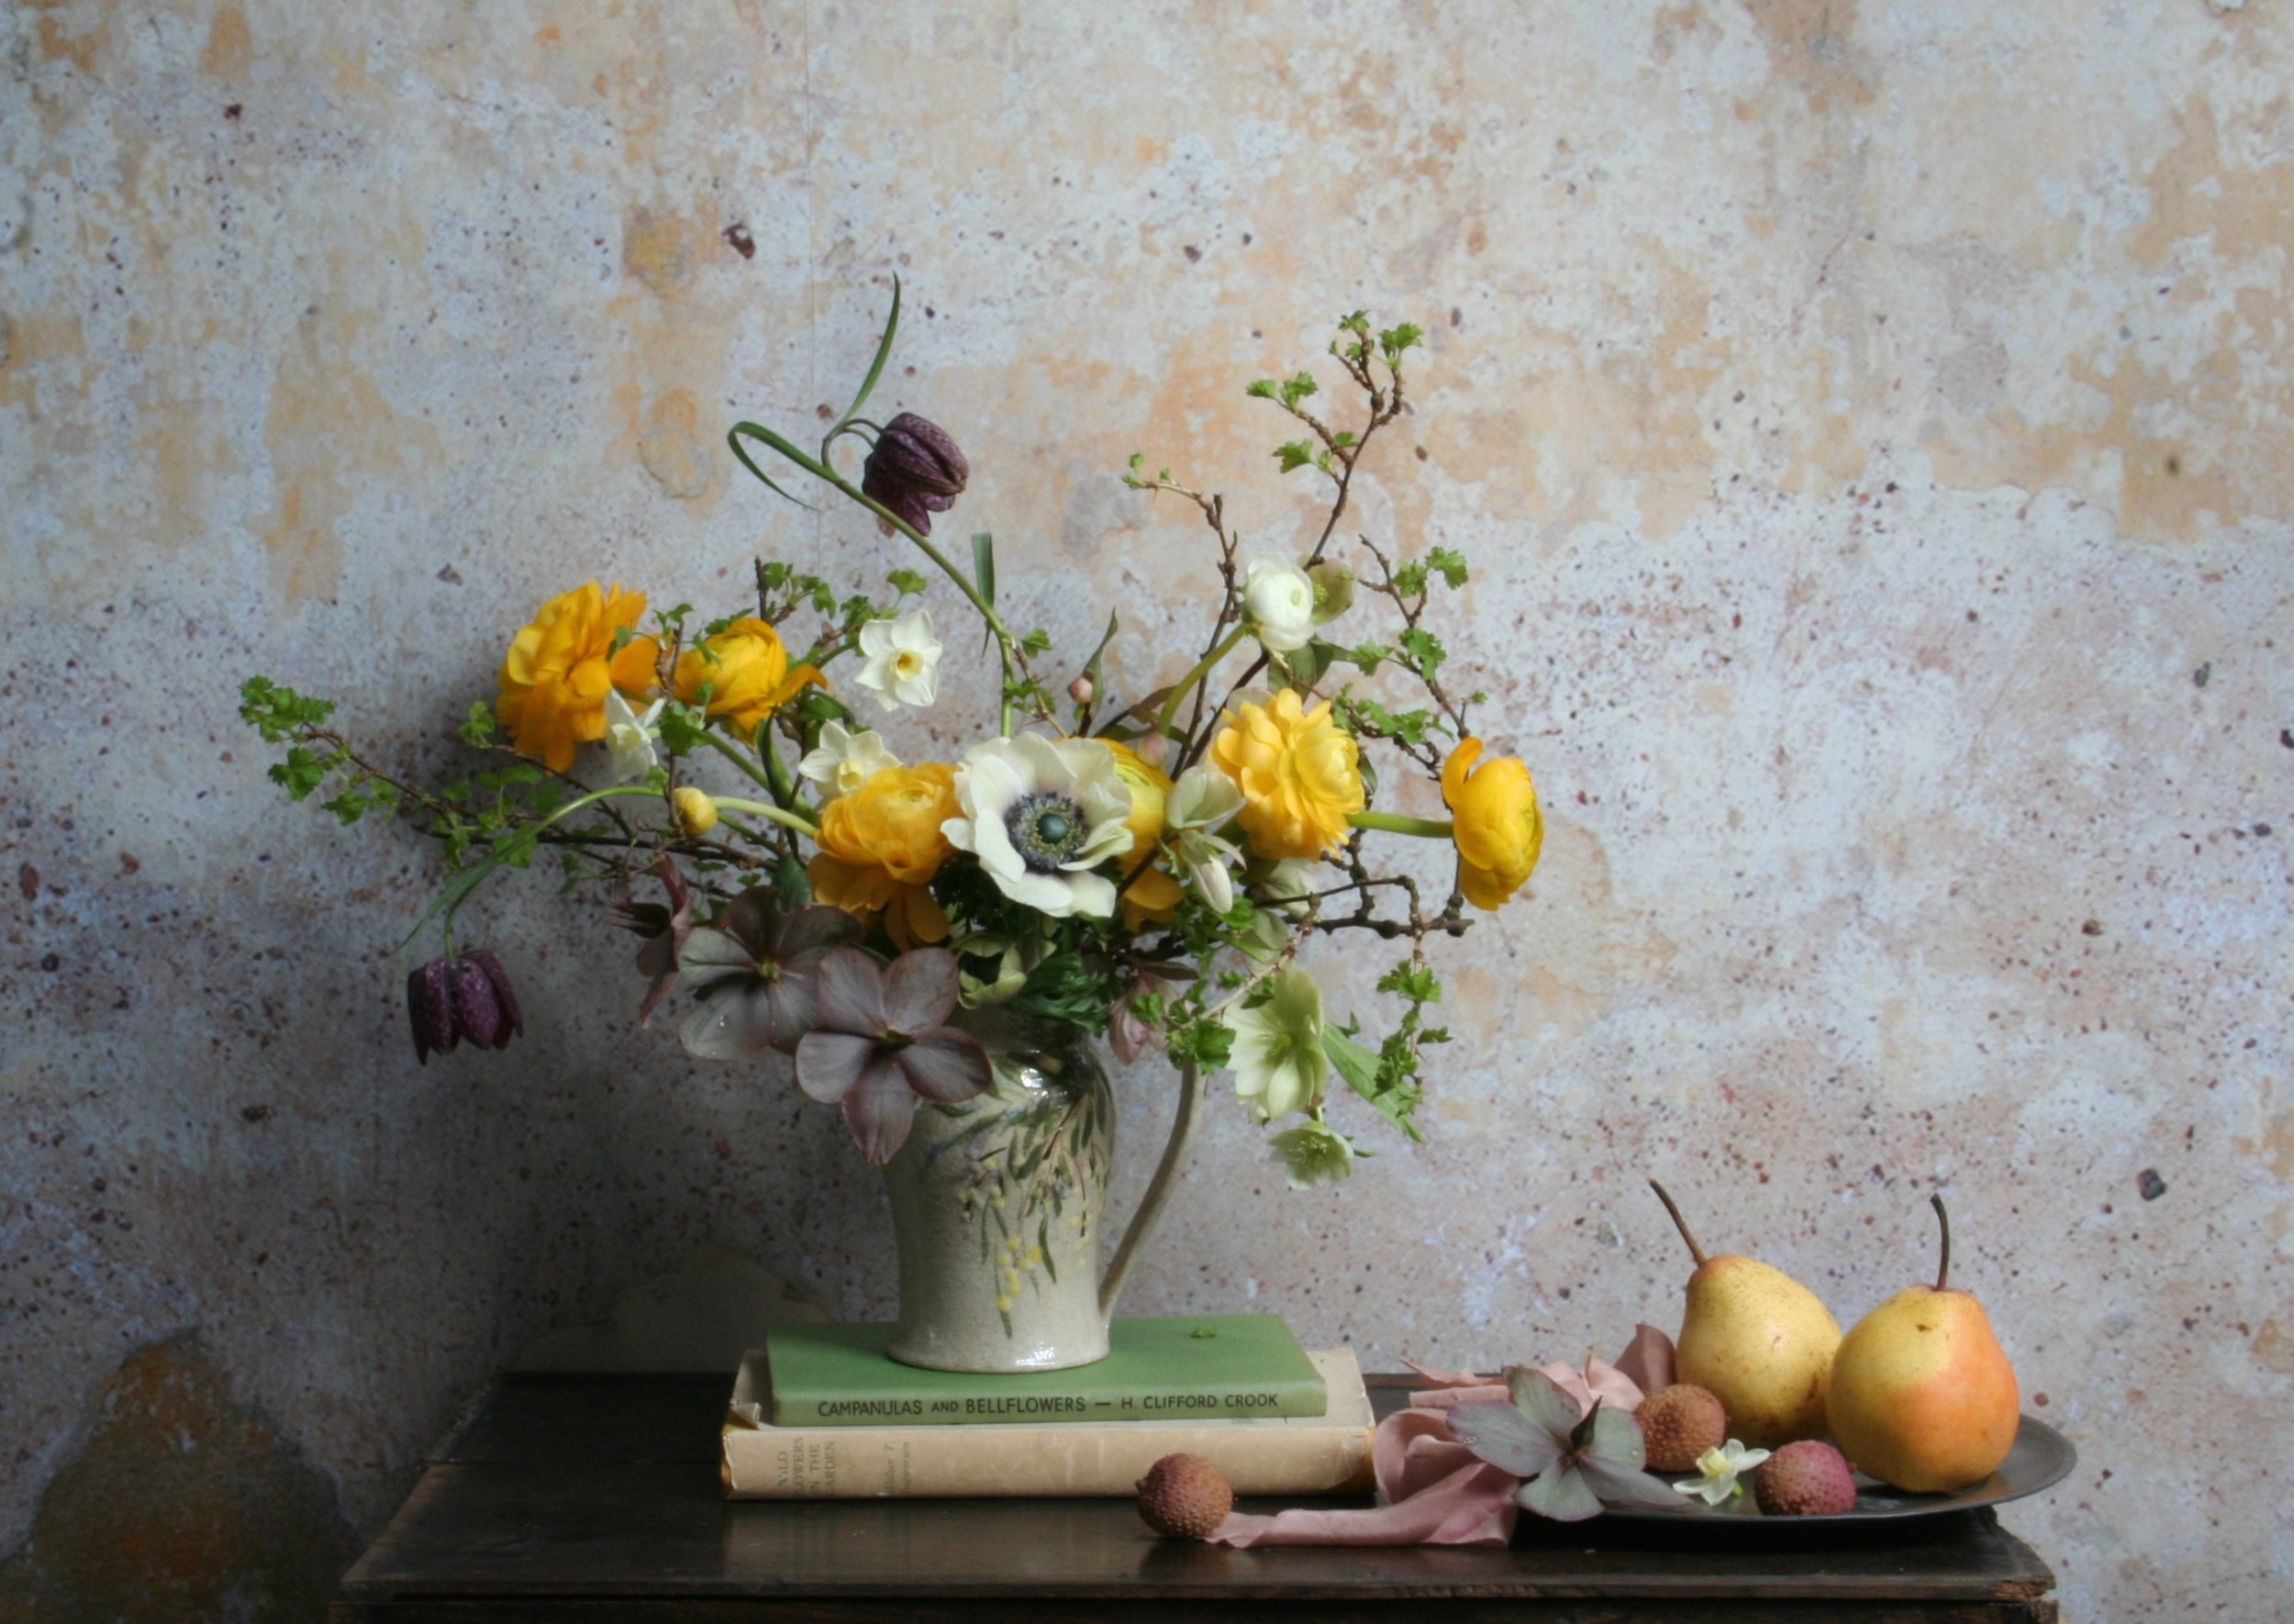 Spring palette of late Hellebores, Ranunculus, Narcissus and Anemones. Photo by Lucy